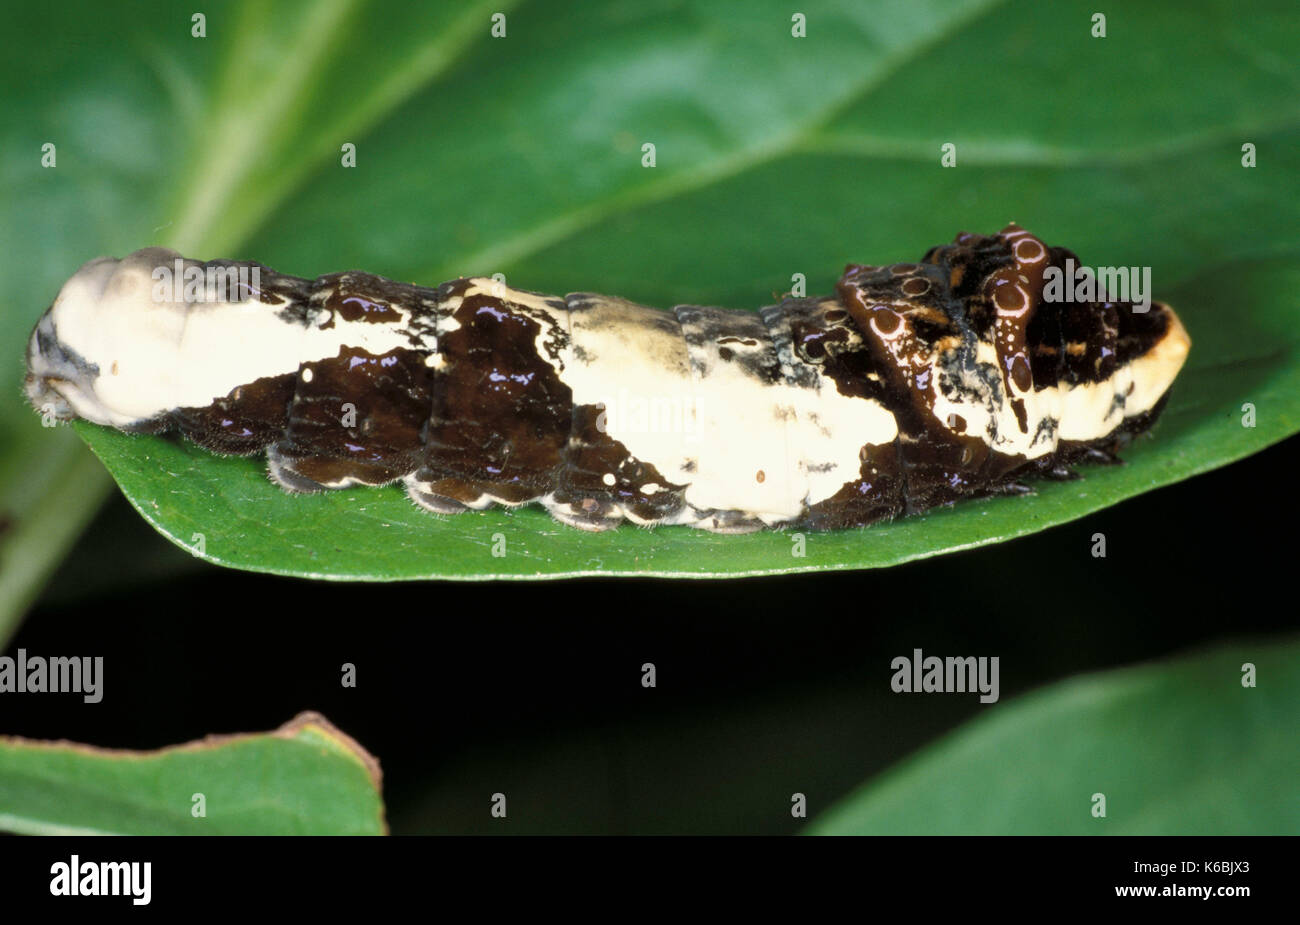 Papilio cresphontes, butterfly caterpillar, resembles bird droppings, camouflage, feed on citrus - Stock Image